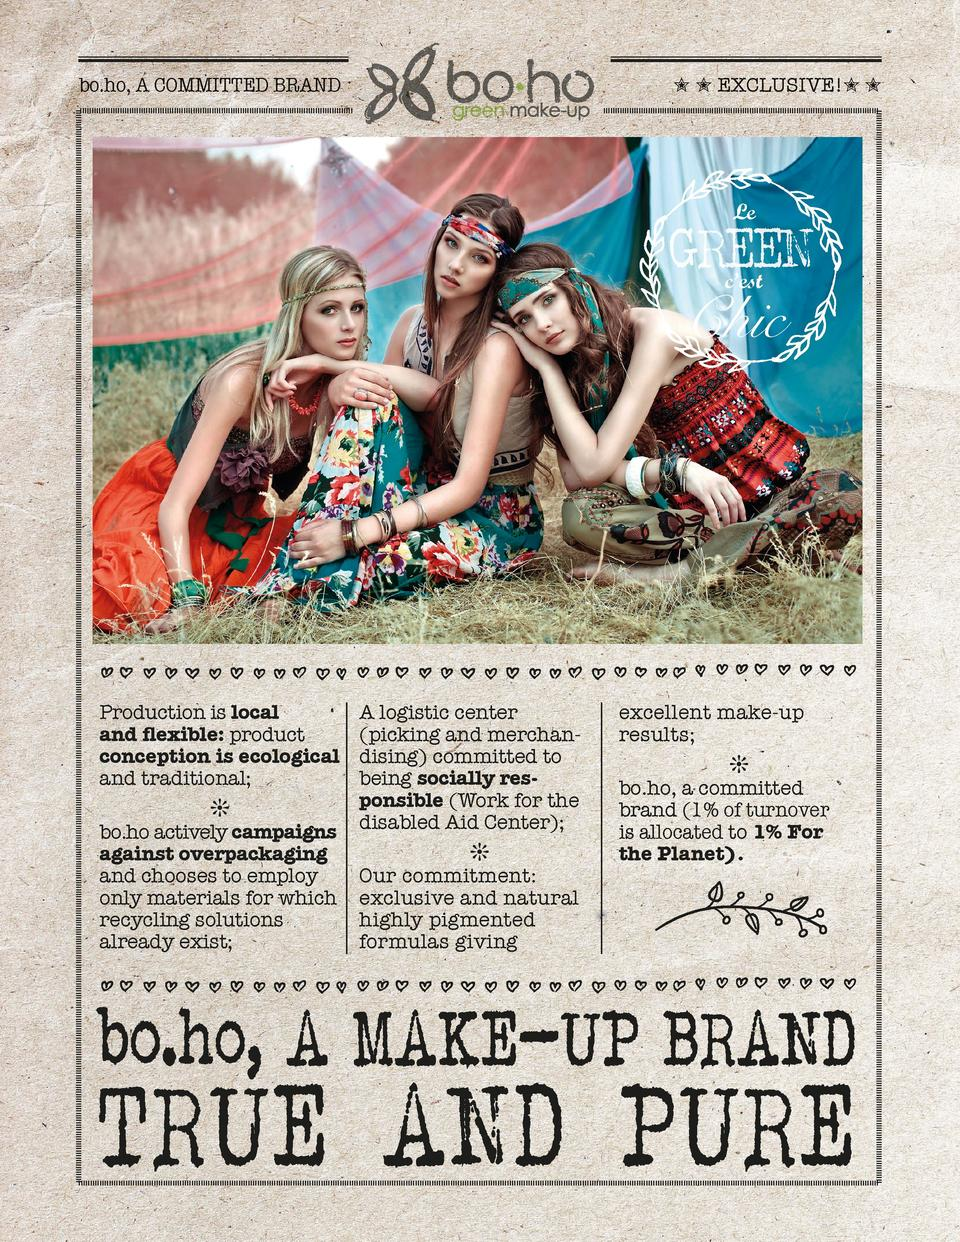 bo.ho, A COMMITTED BRAND          EXCLUSIVE          Le  GREEN Chic c   est  Production is local and flexible  product con...